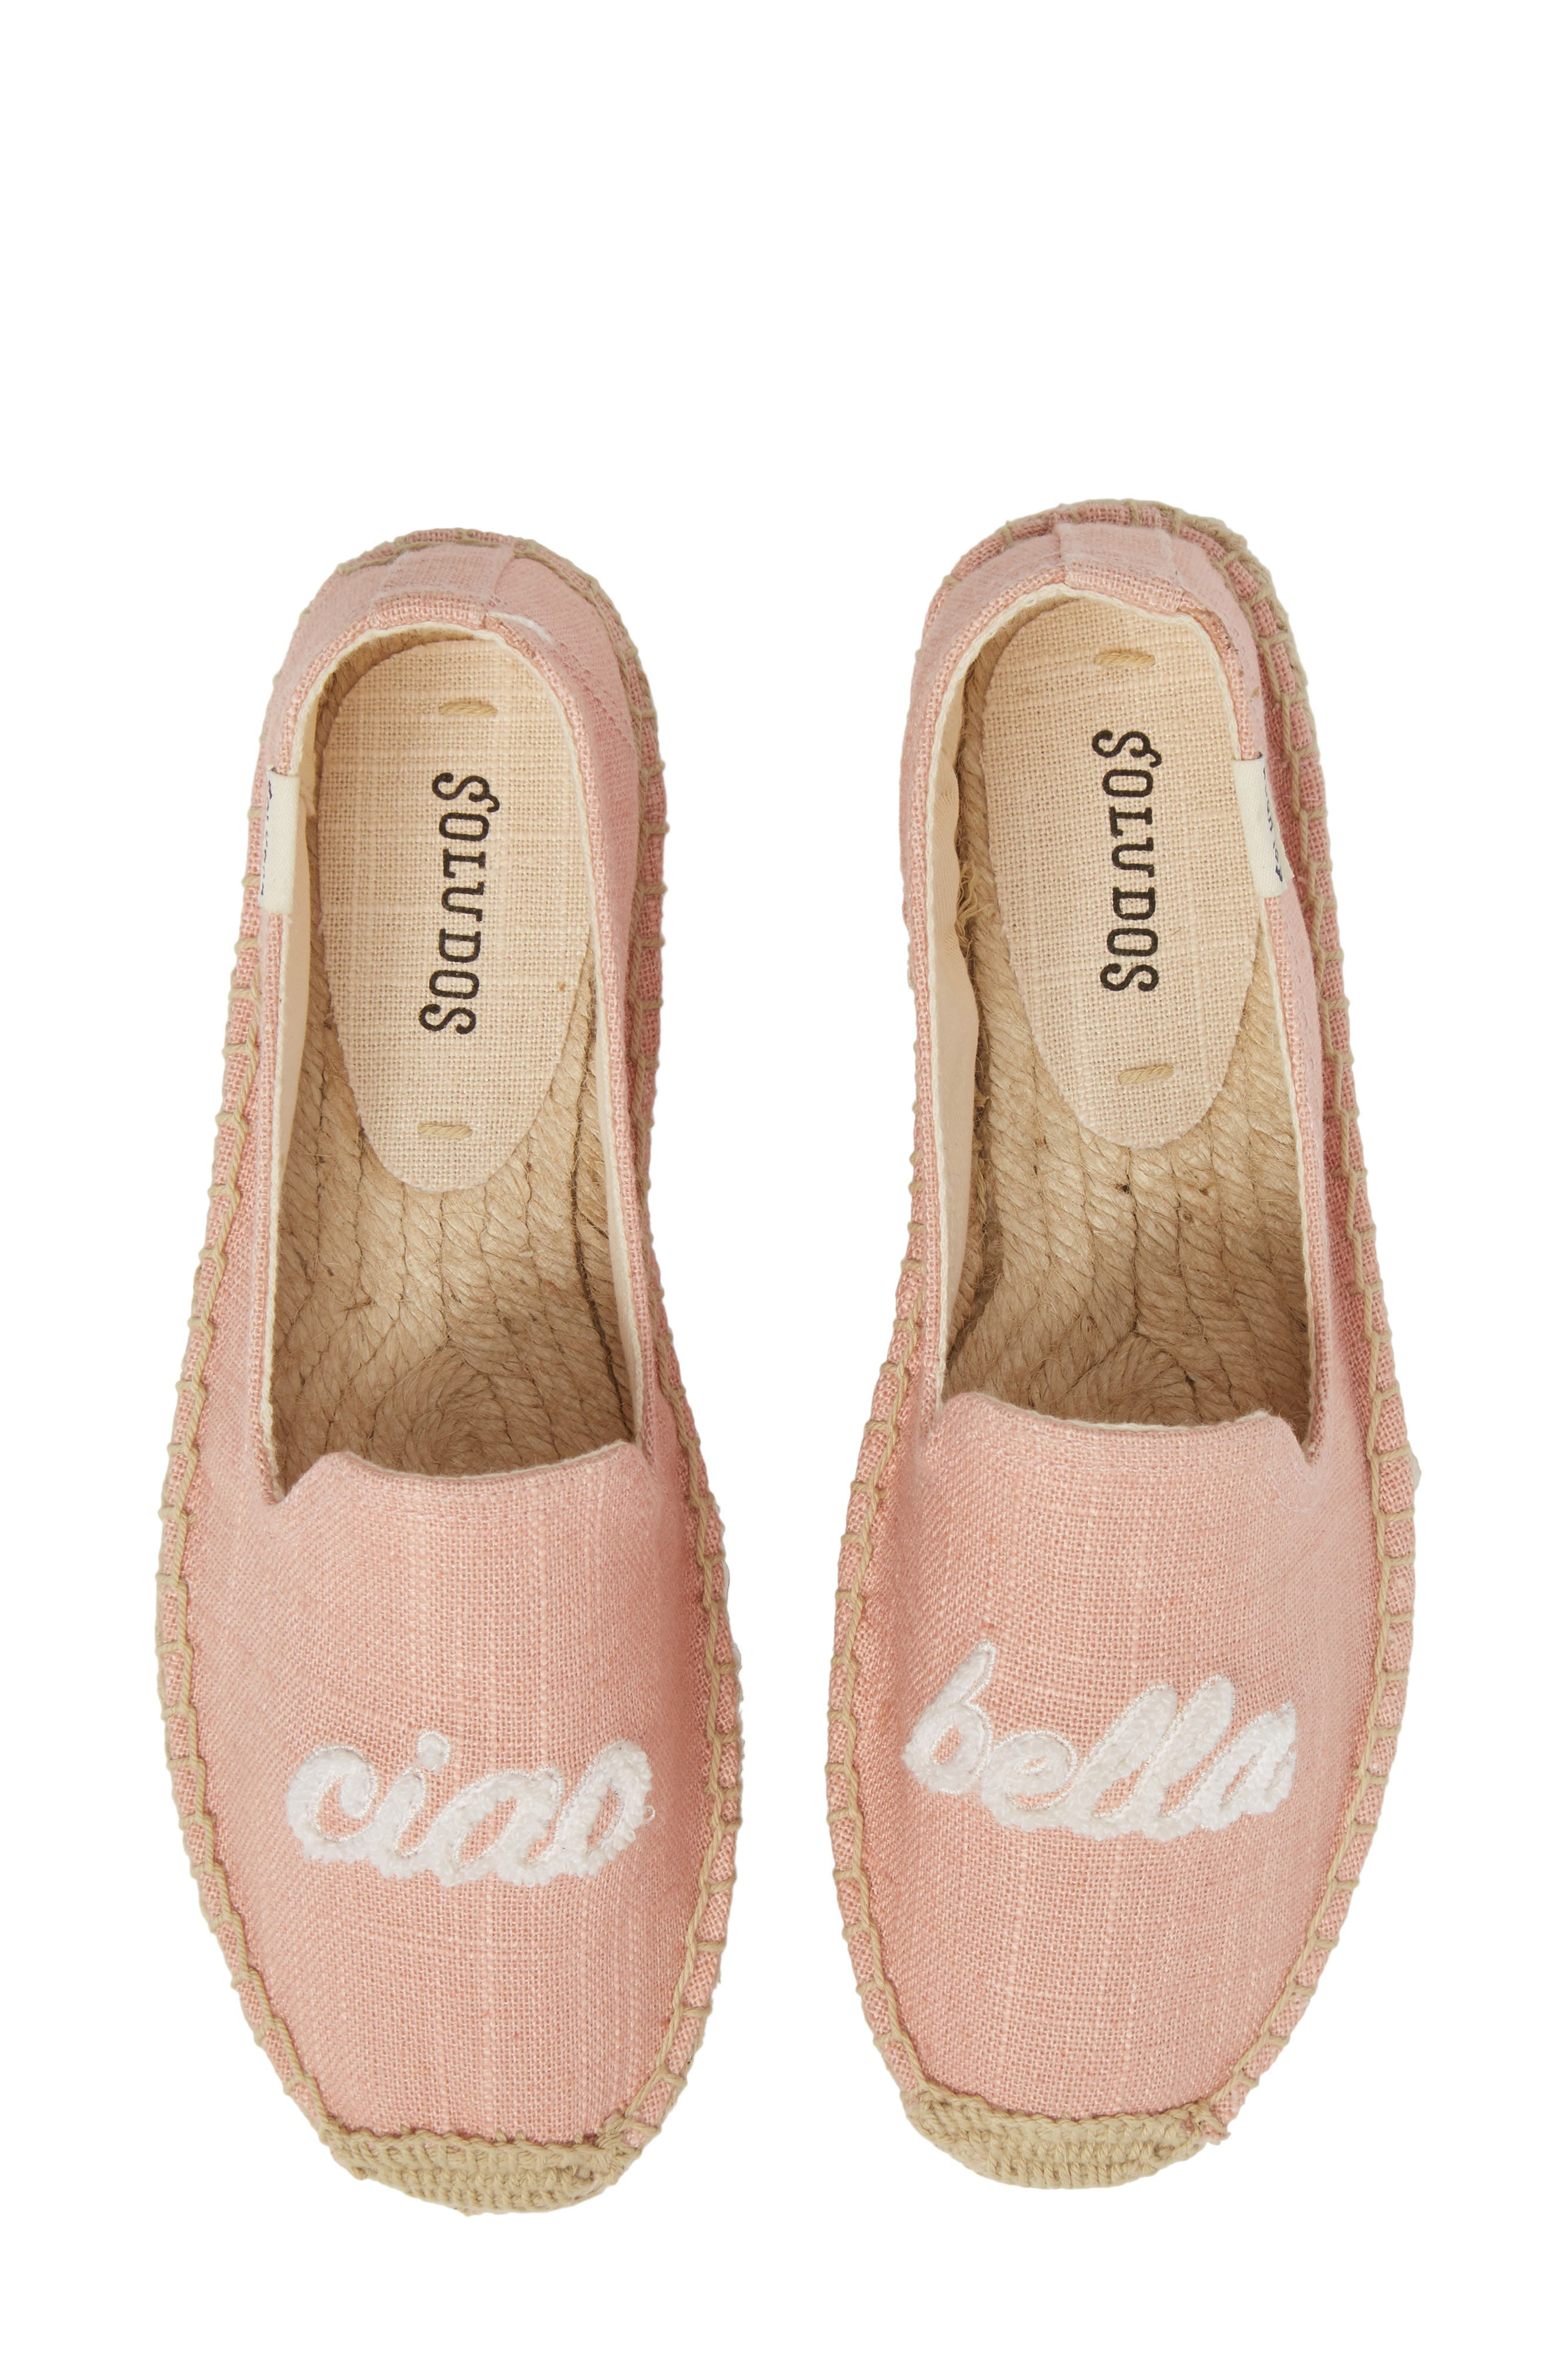 SOLUDOS Ciao Bella Espadrille Flat, Main, color, DUSTY ROSE FABRIC